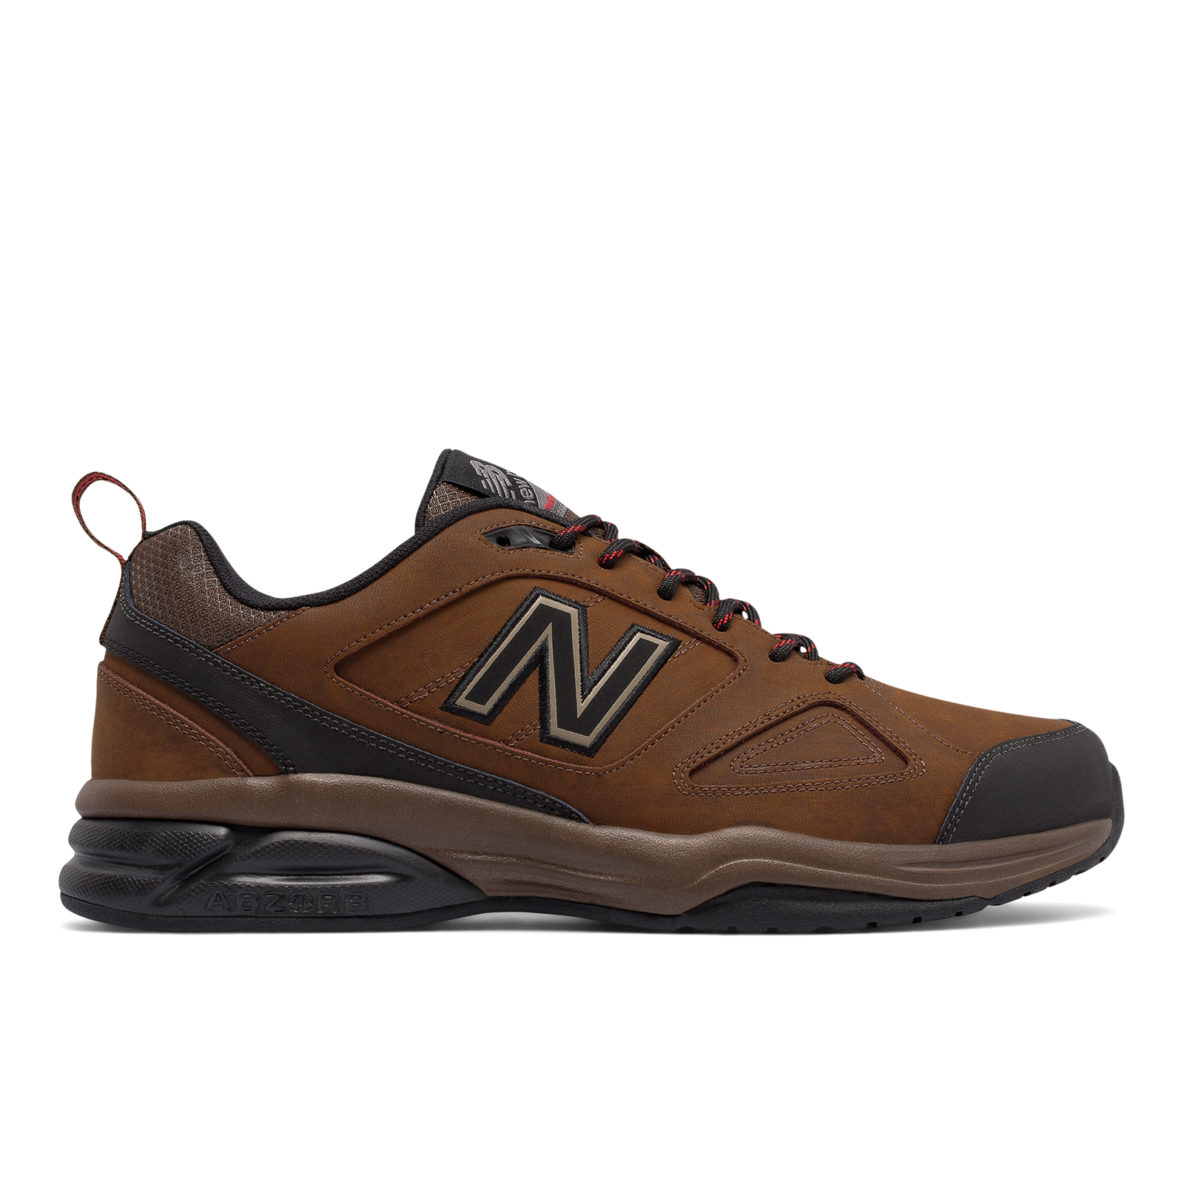 176a3e5c67f6 623v3 Core Trainer Leather – Brown with Brown